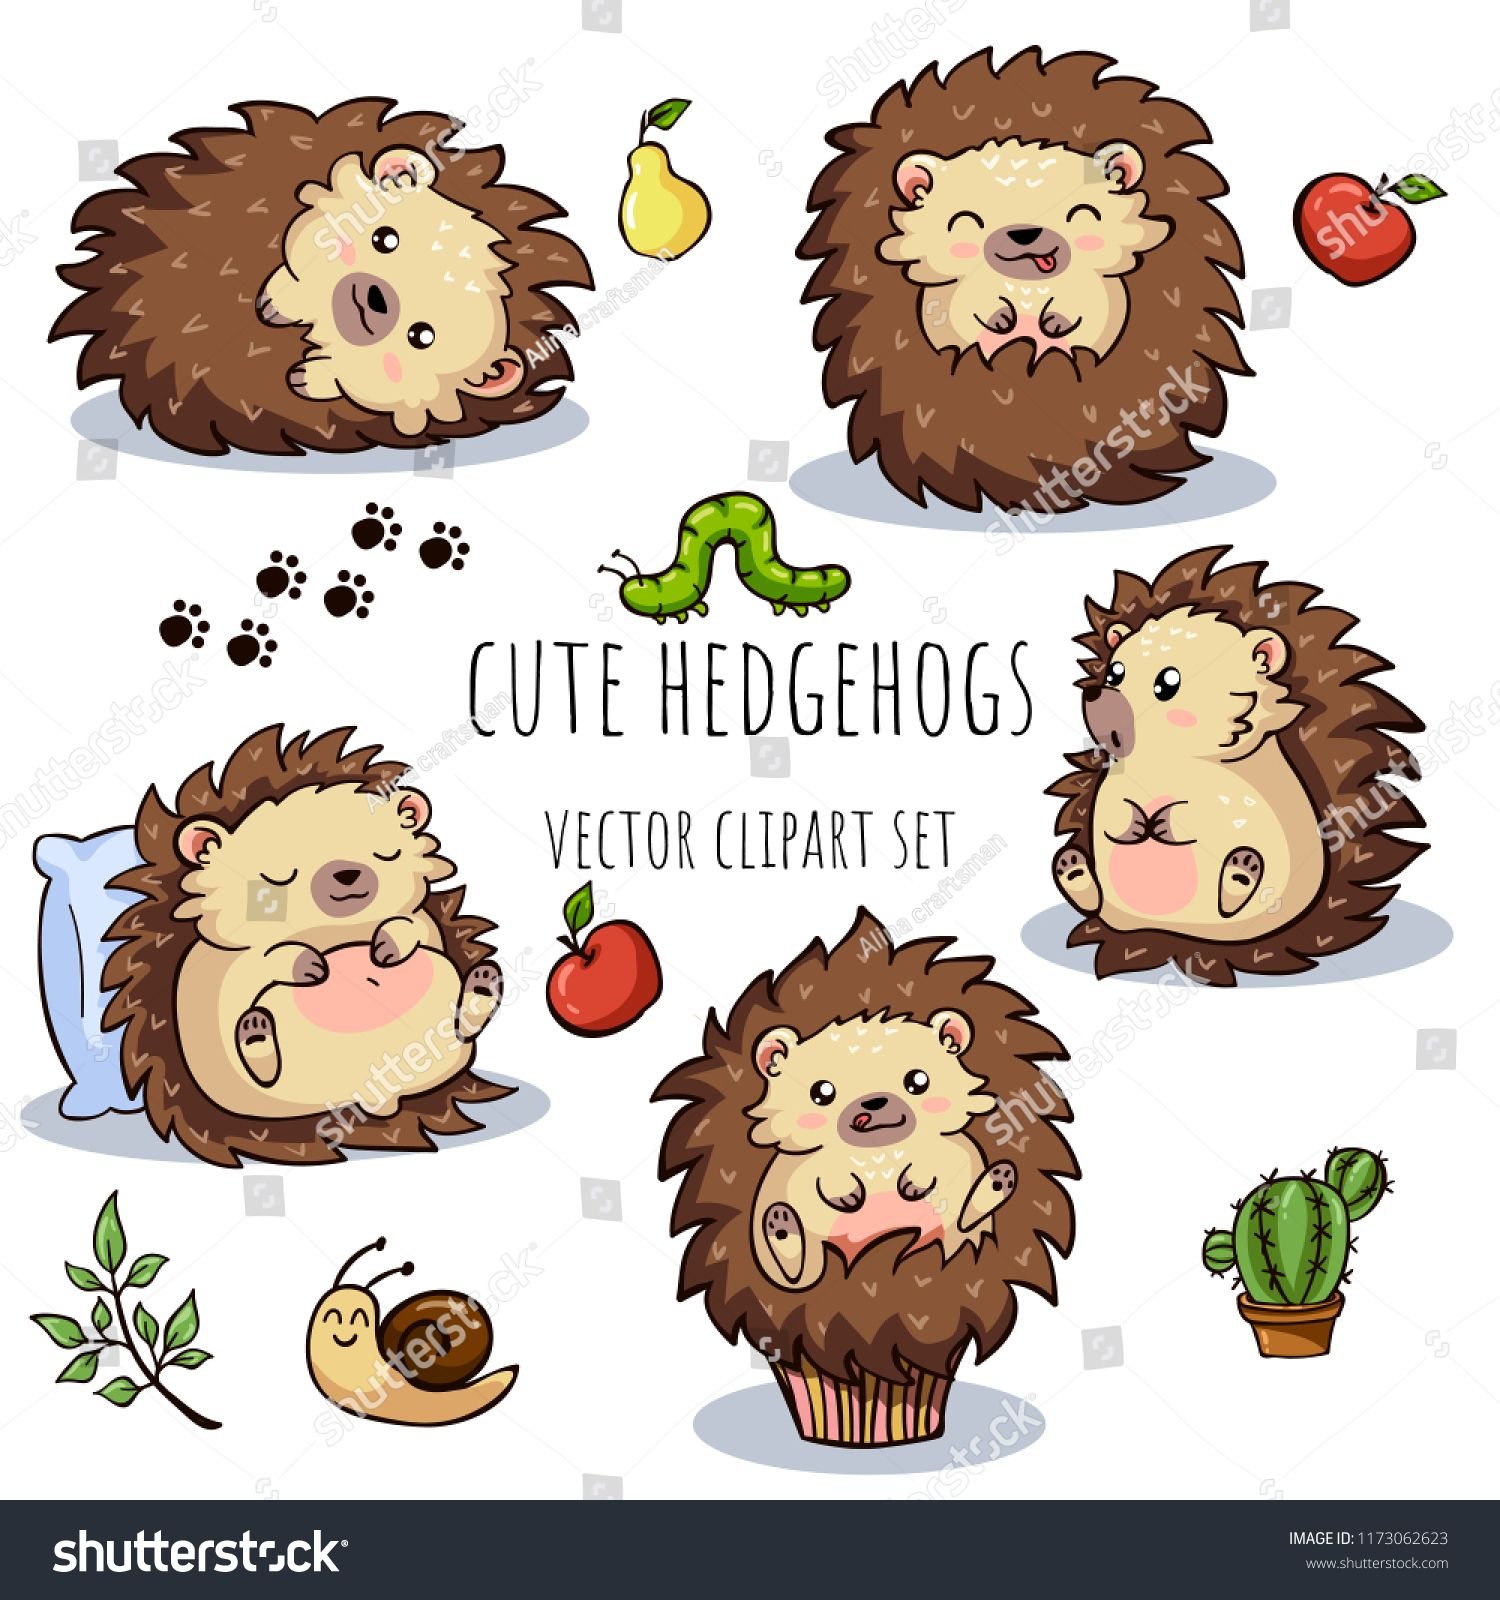 Cute Baby Hedgehog Cartoon Vector Clipart - FriendlyStock